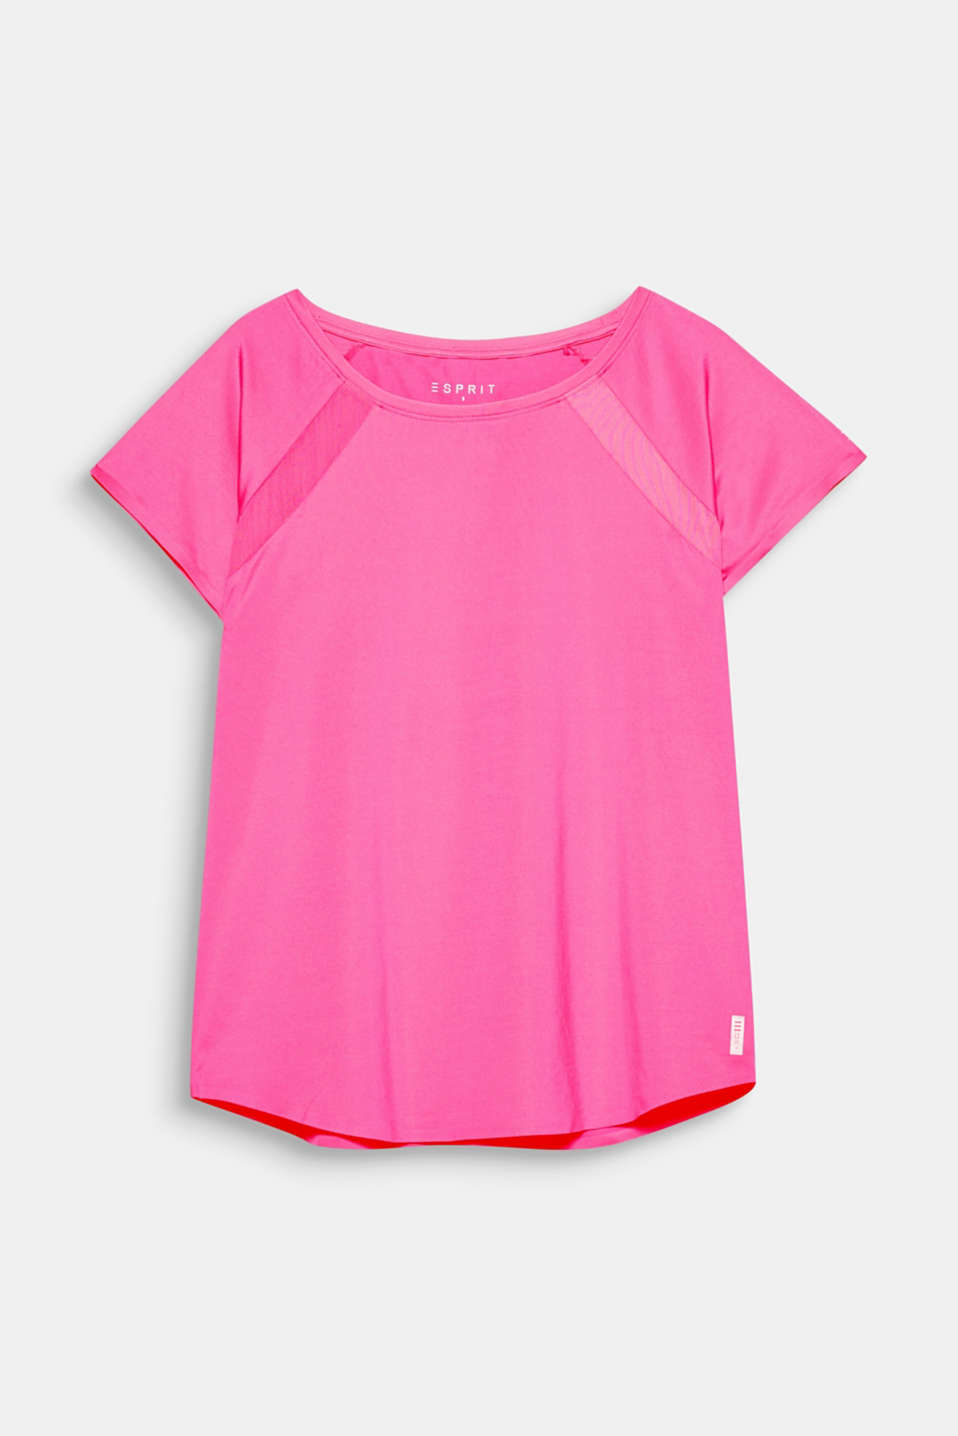 Subtle and vibrant: this casual active top with mesh details and E-DRY technology is functional and comfy!